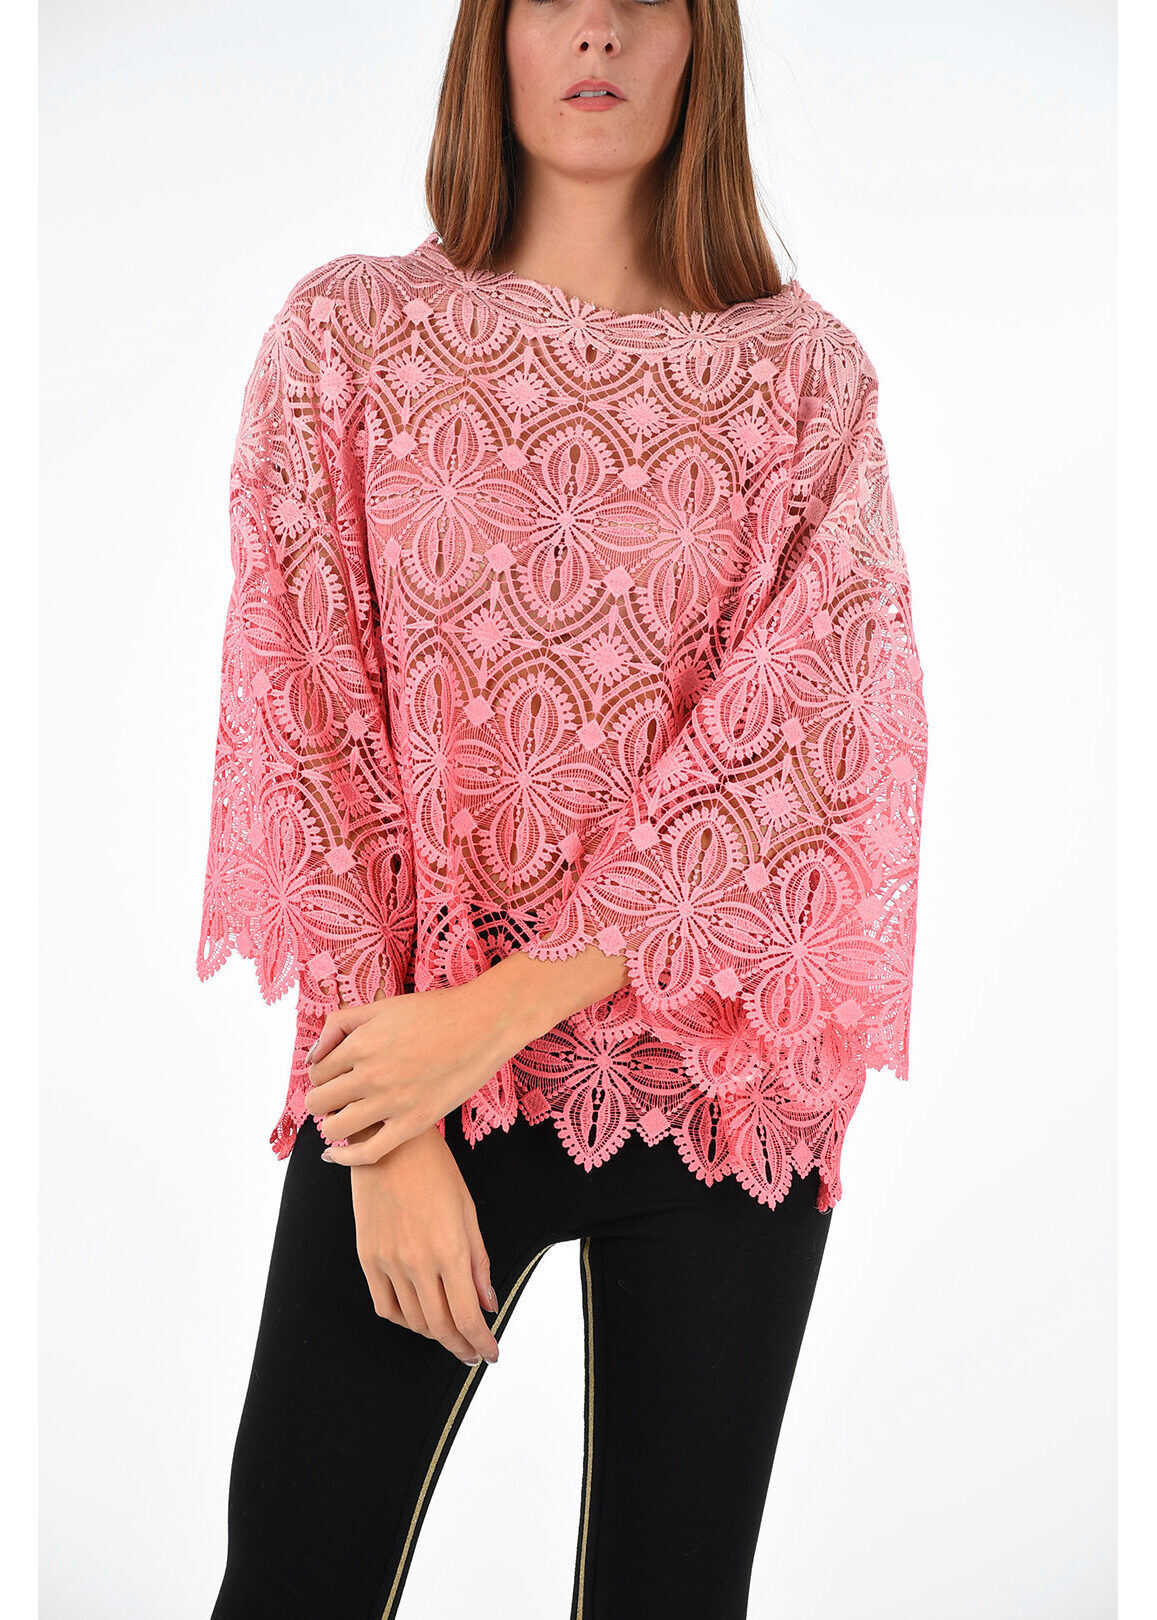 crochet embroidered sheer top